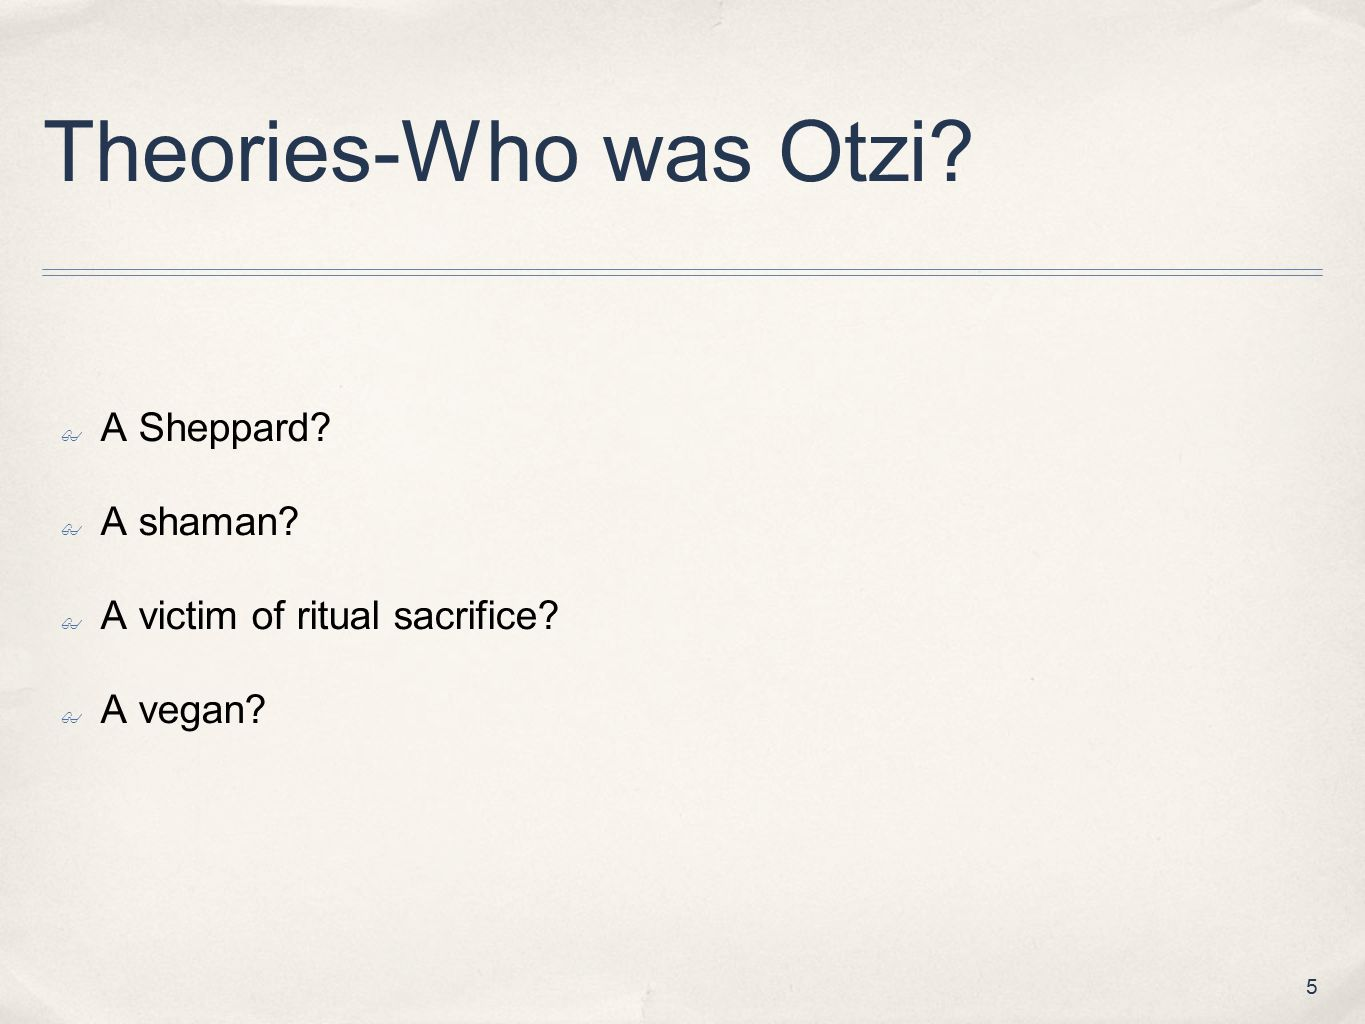 6 HOW AND WHY DID HE DIE? ✤ WHAT TOOLS WILL WE USE TO DETERMINE WHY AND HOW OTZI WAS KILLED? ✤